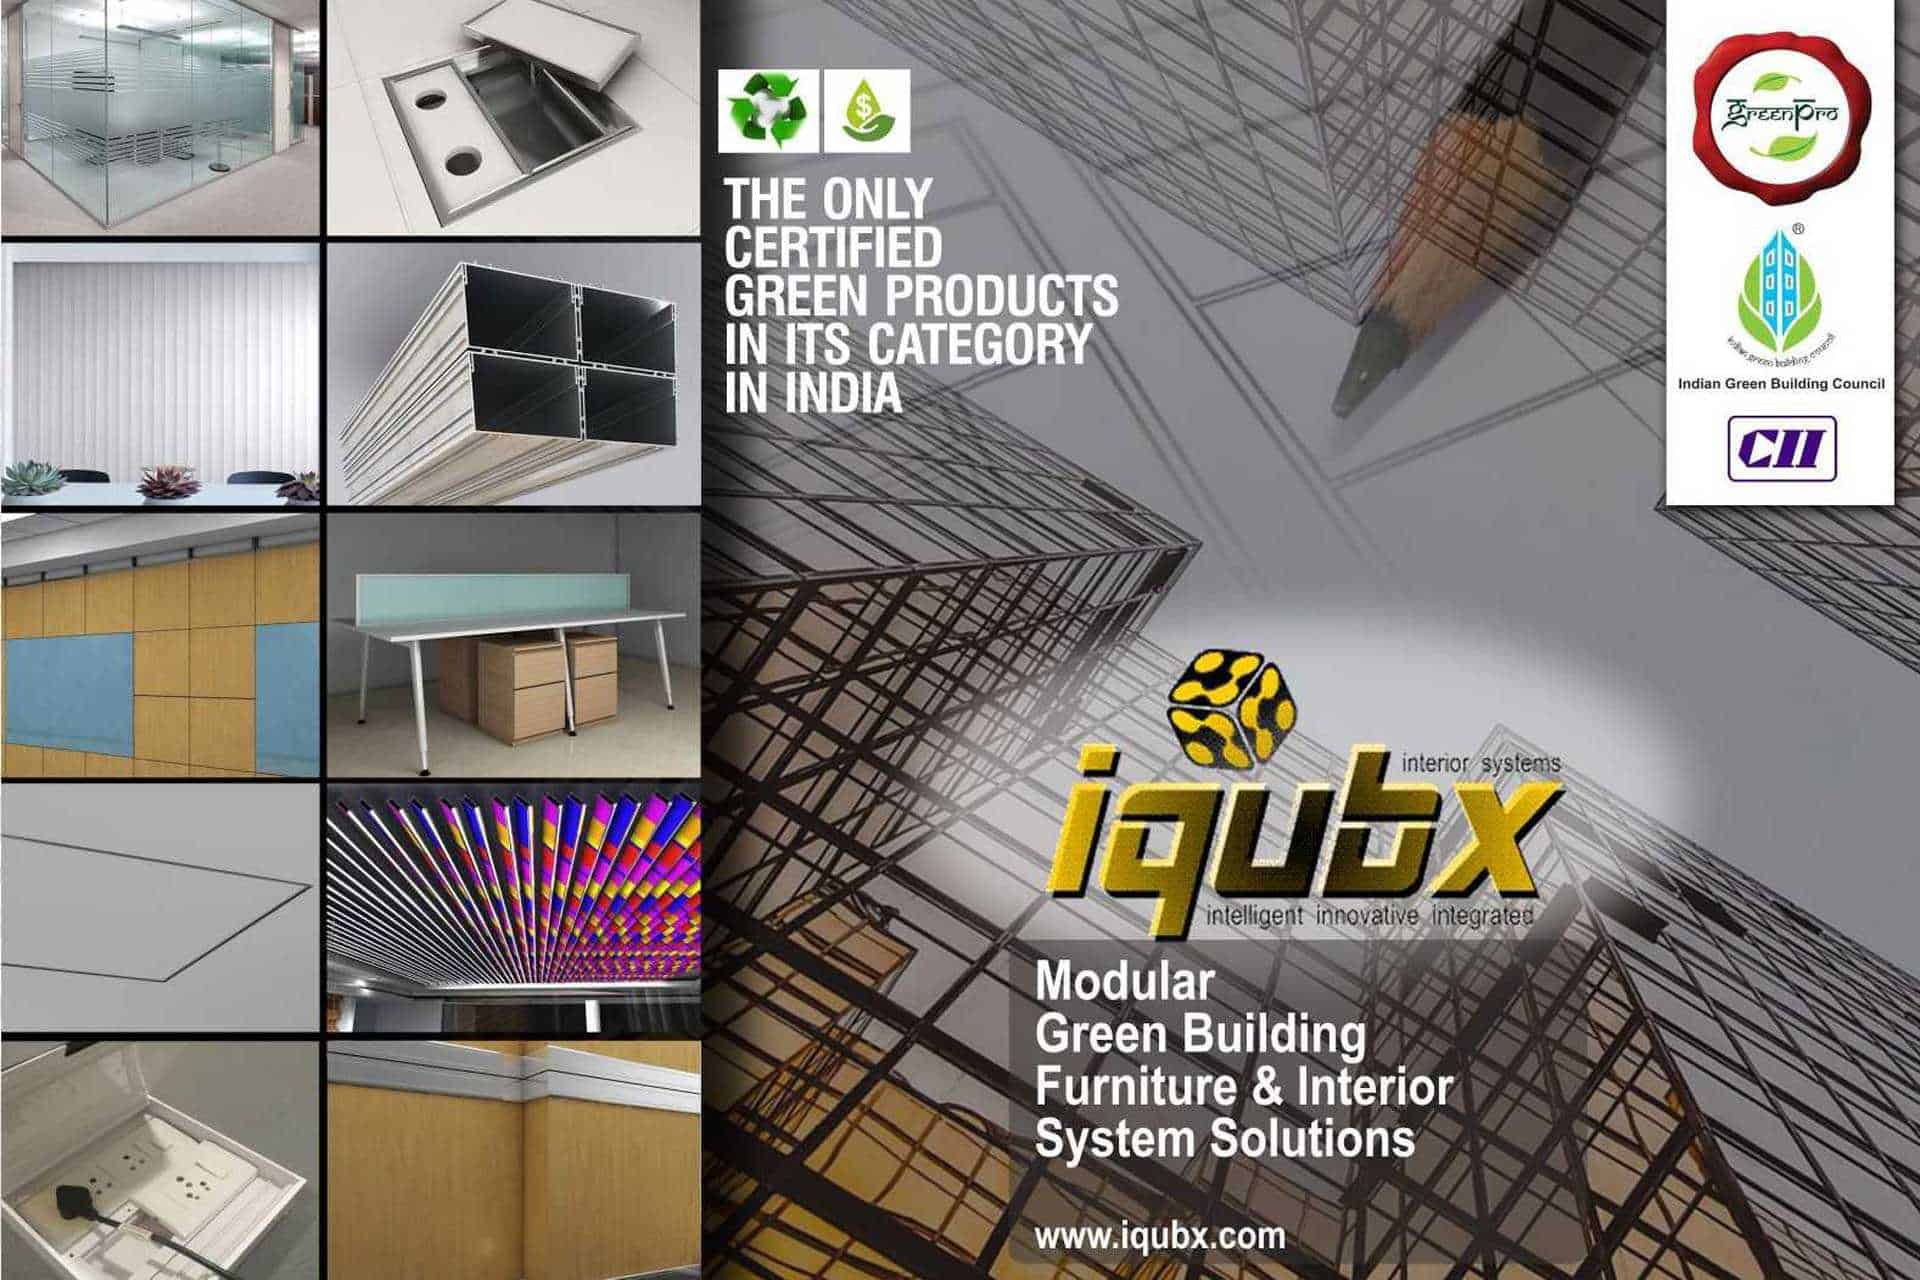 Iqubx Innovative Green Building Product Modular Systems Interiors Home Wiring Materials Products